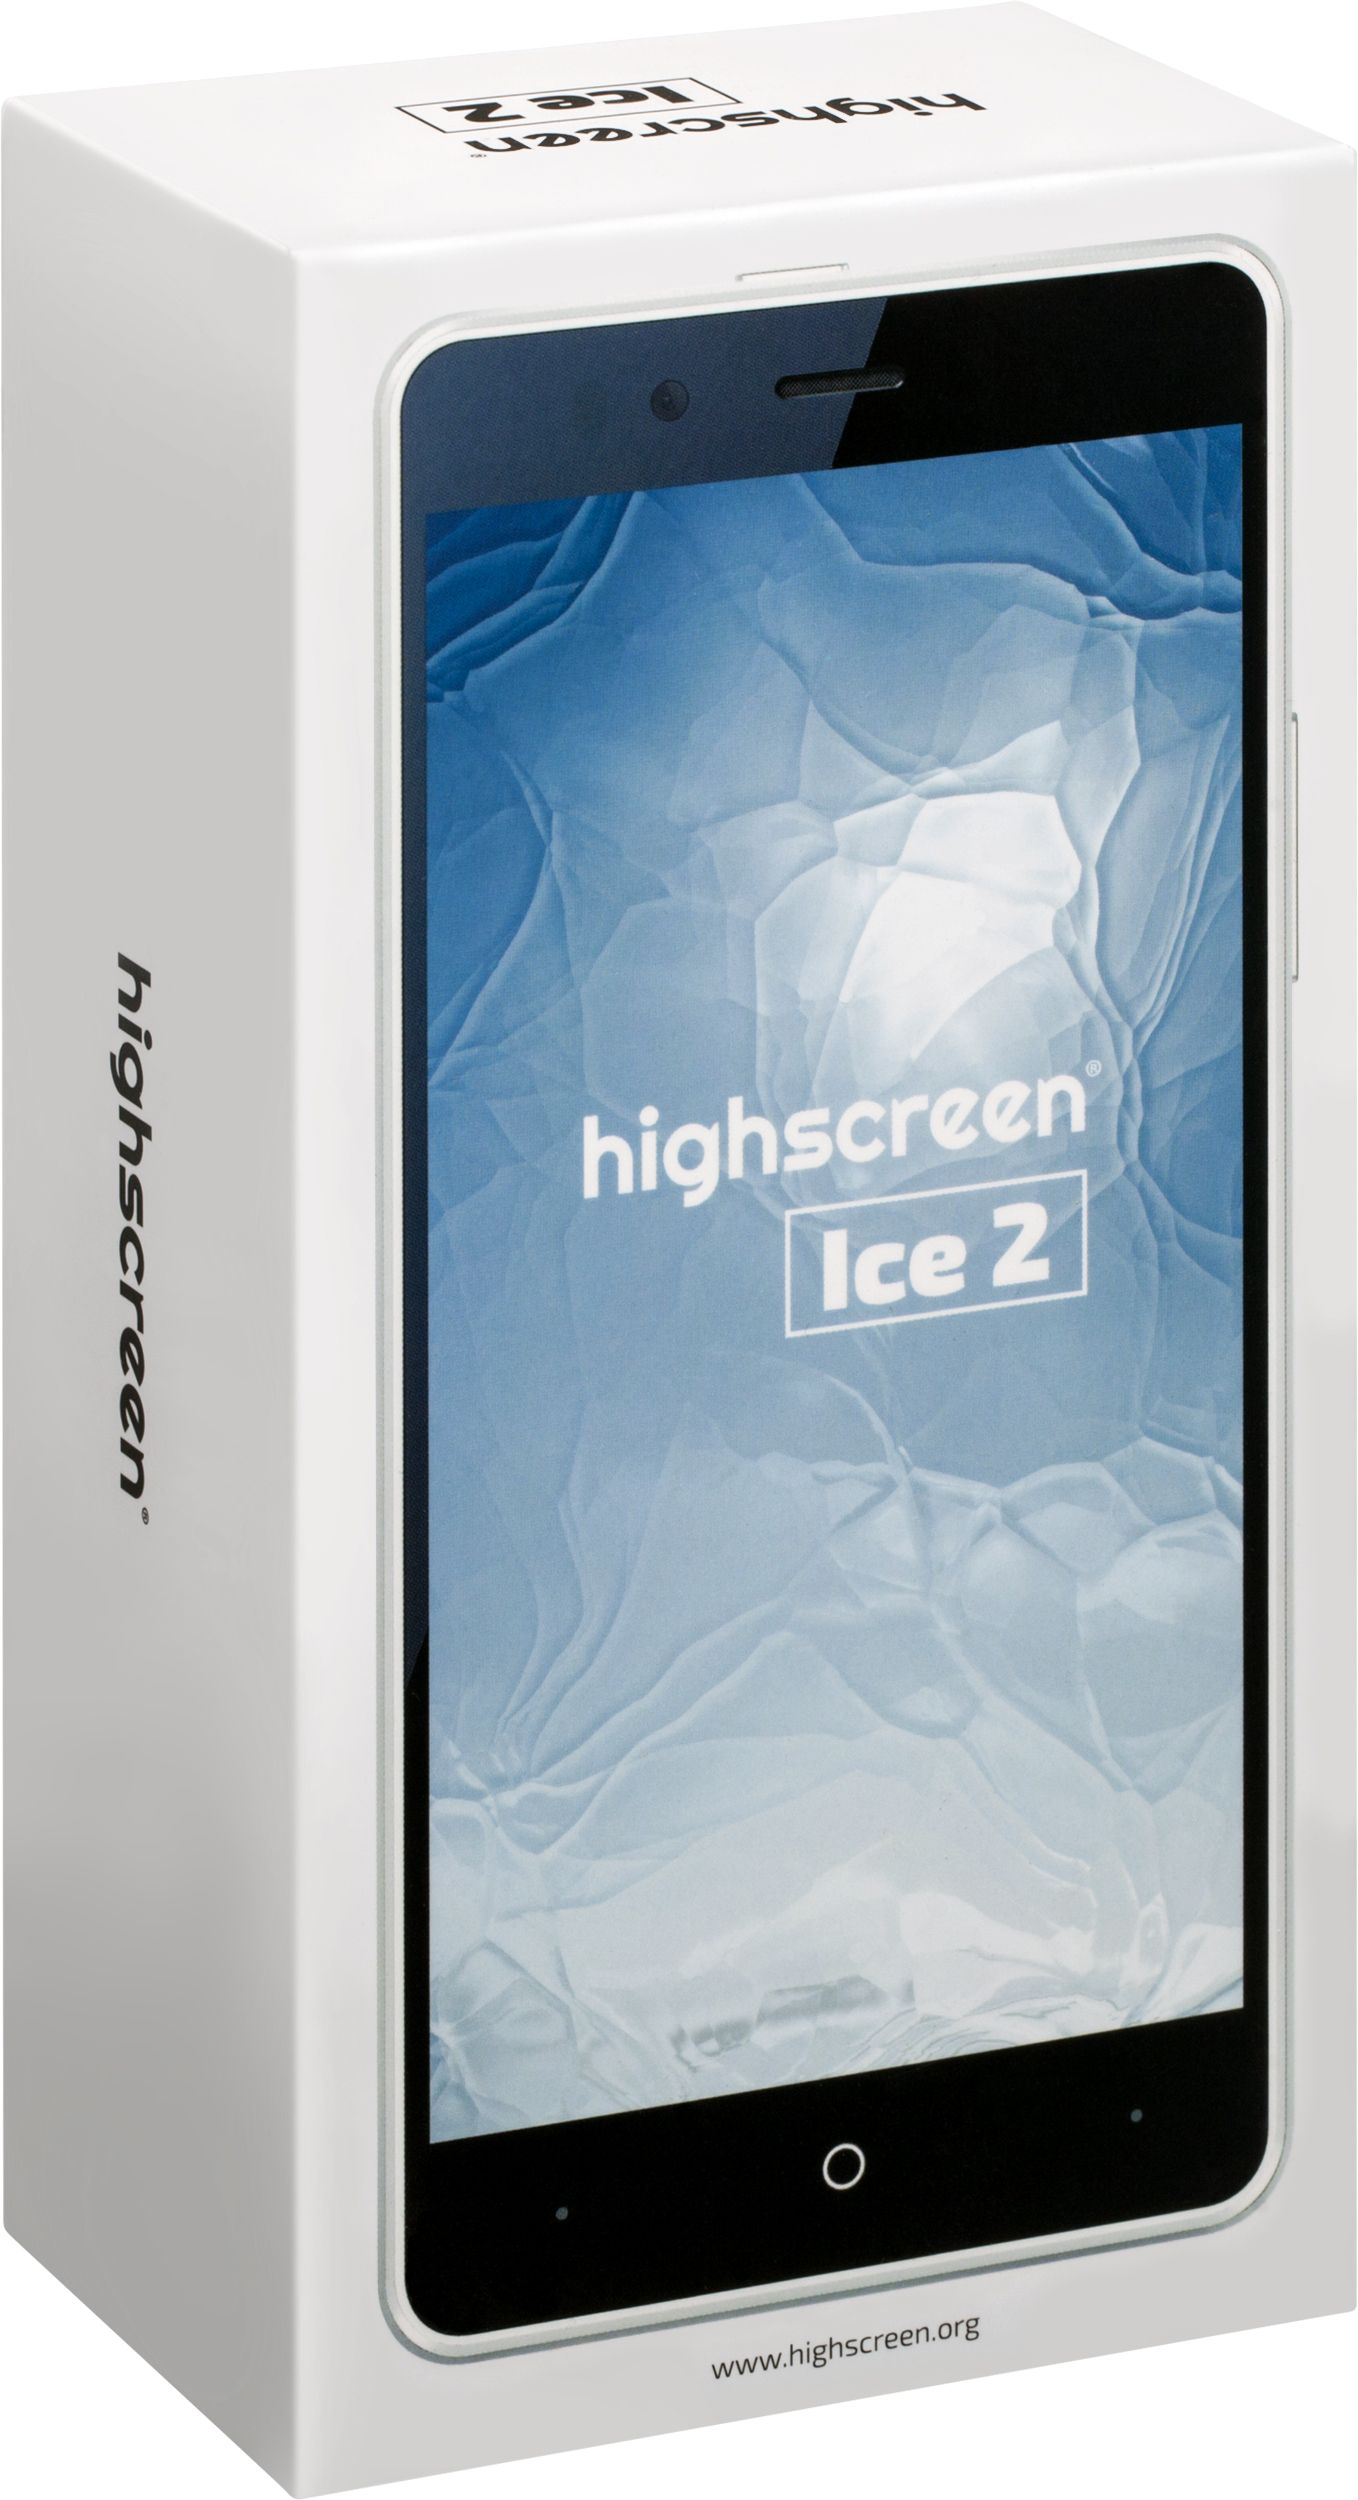 Highscreen Ice 2